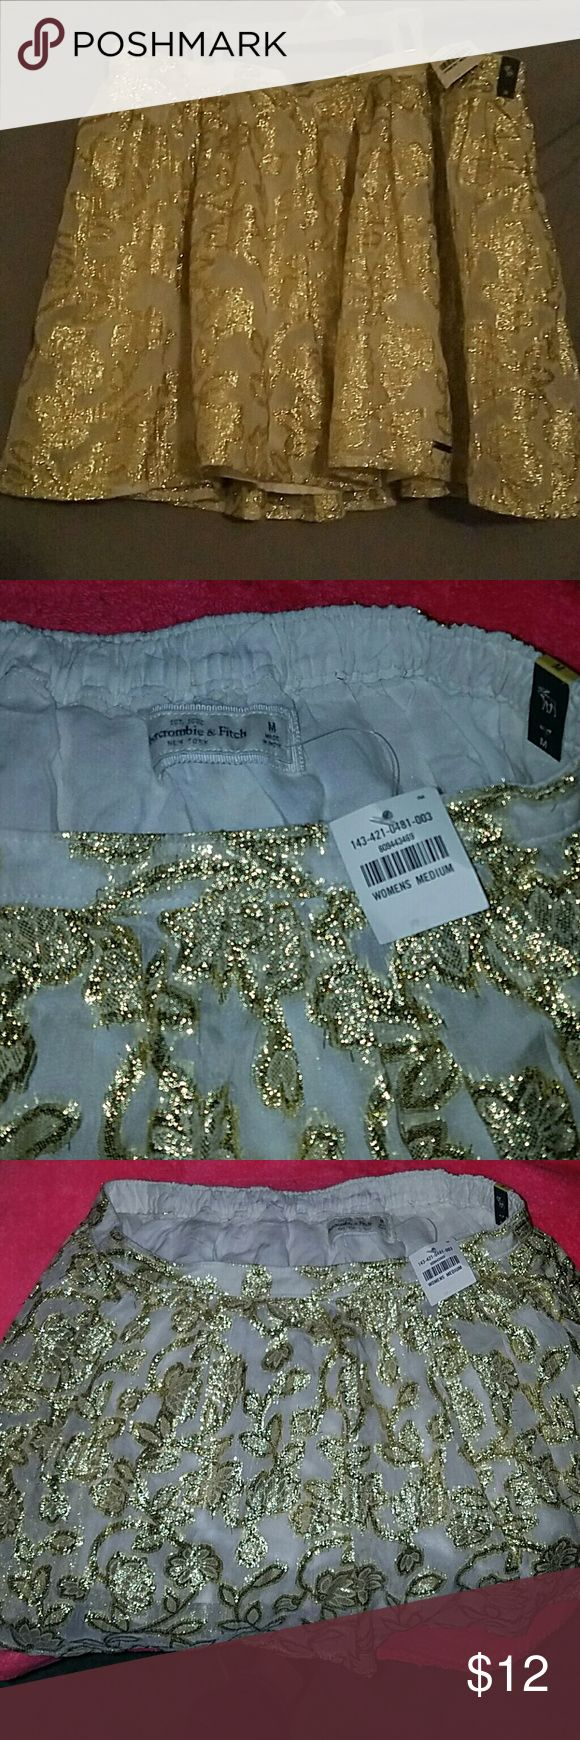 Holiday ready.. Nwt abercrombie skirt Get ready to party with this shiny gold and cream skirt from abercrombie and Fitch size medium skirt. Nwt Abercrombie & Fitch Skirts Mini